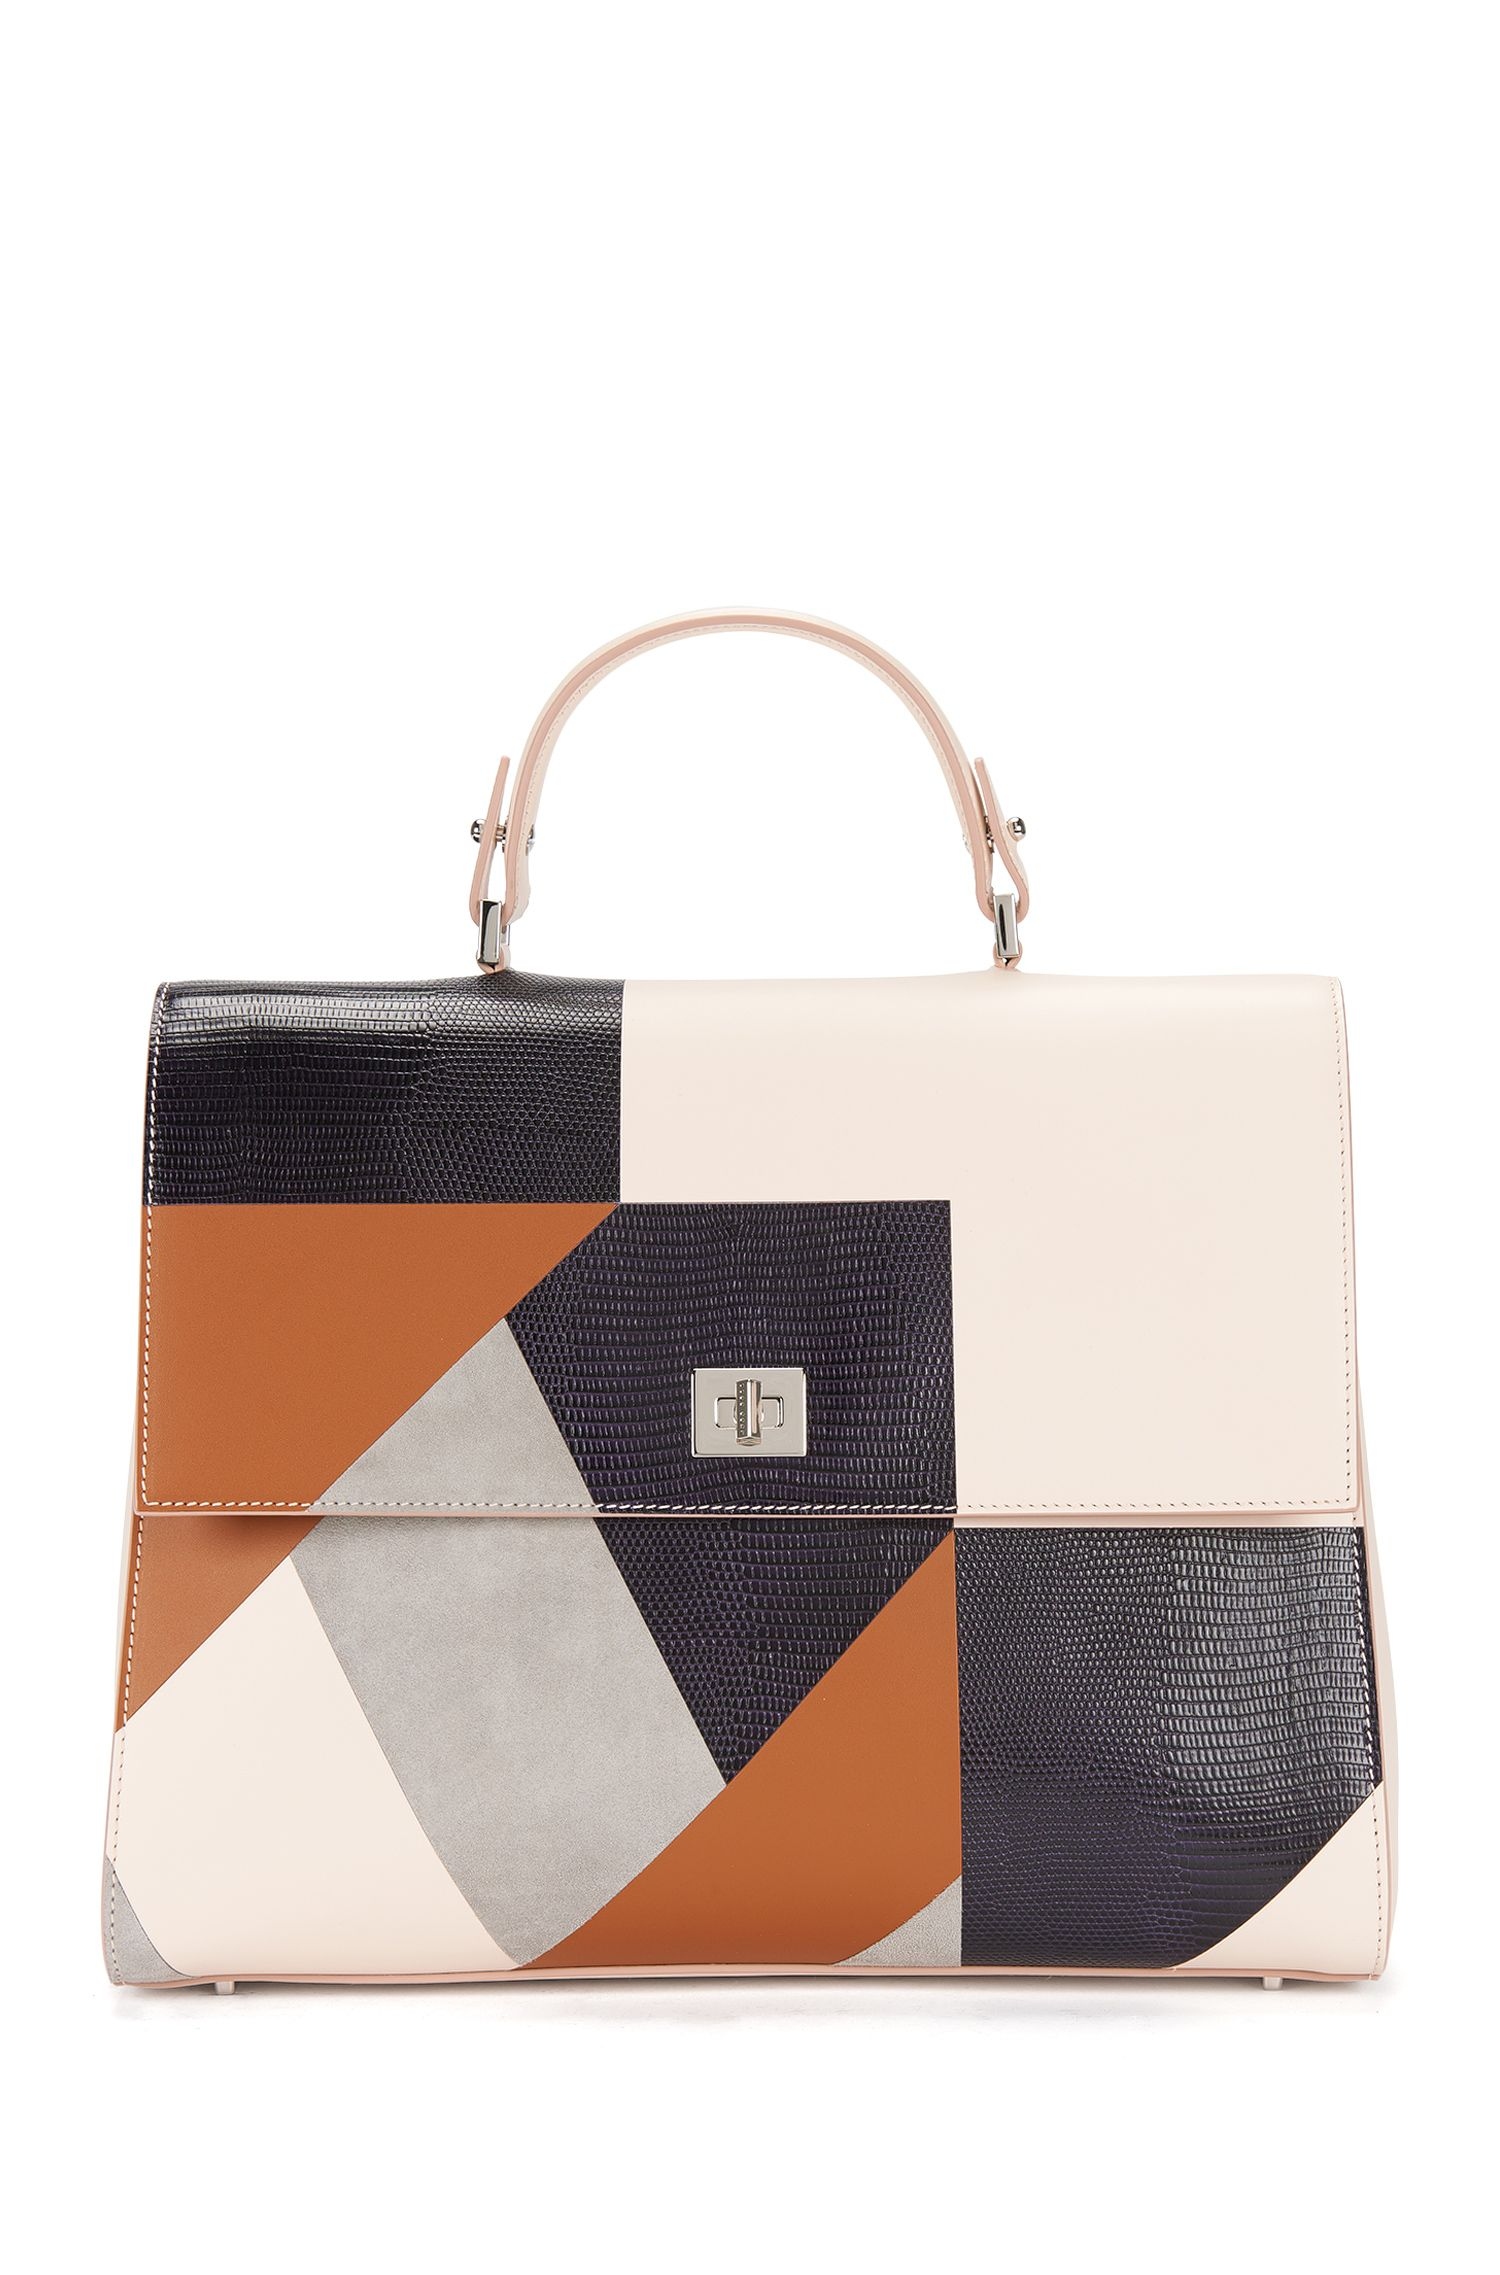 Runway Edition BOSS Bespoke Handtasche aus Leder-Mix in Patchwork-Optik